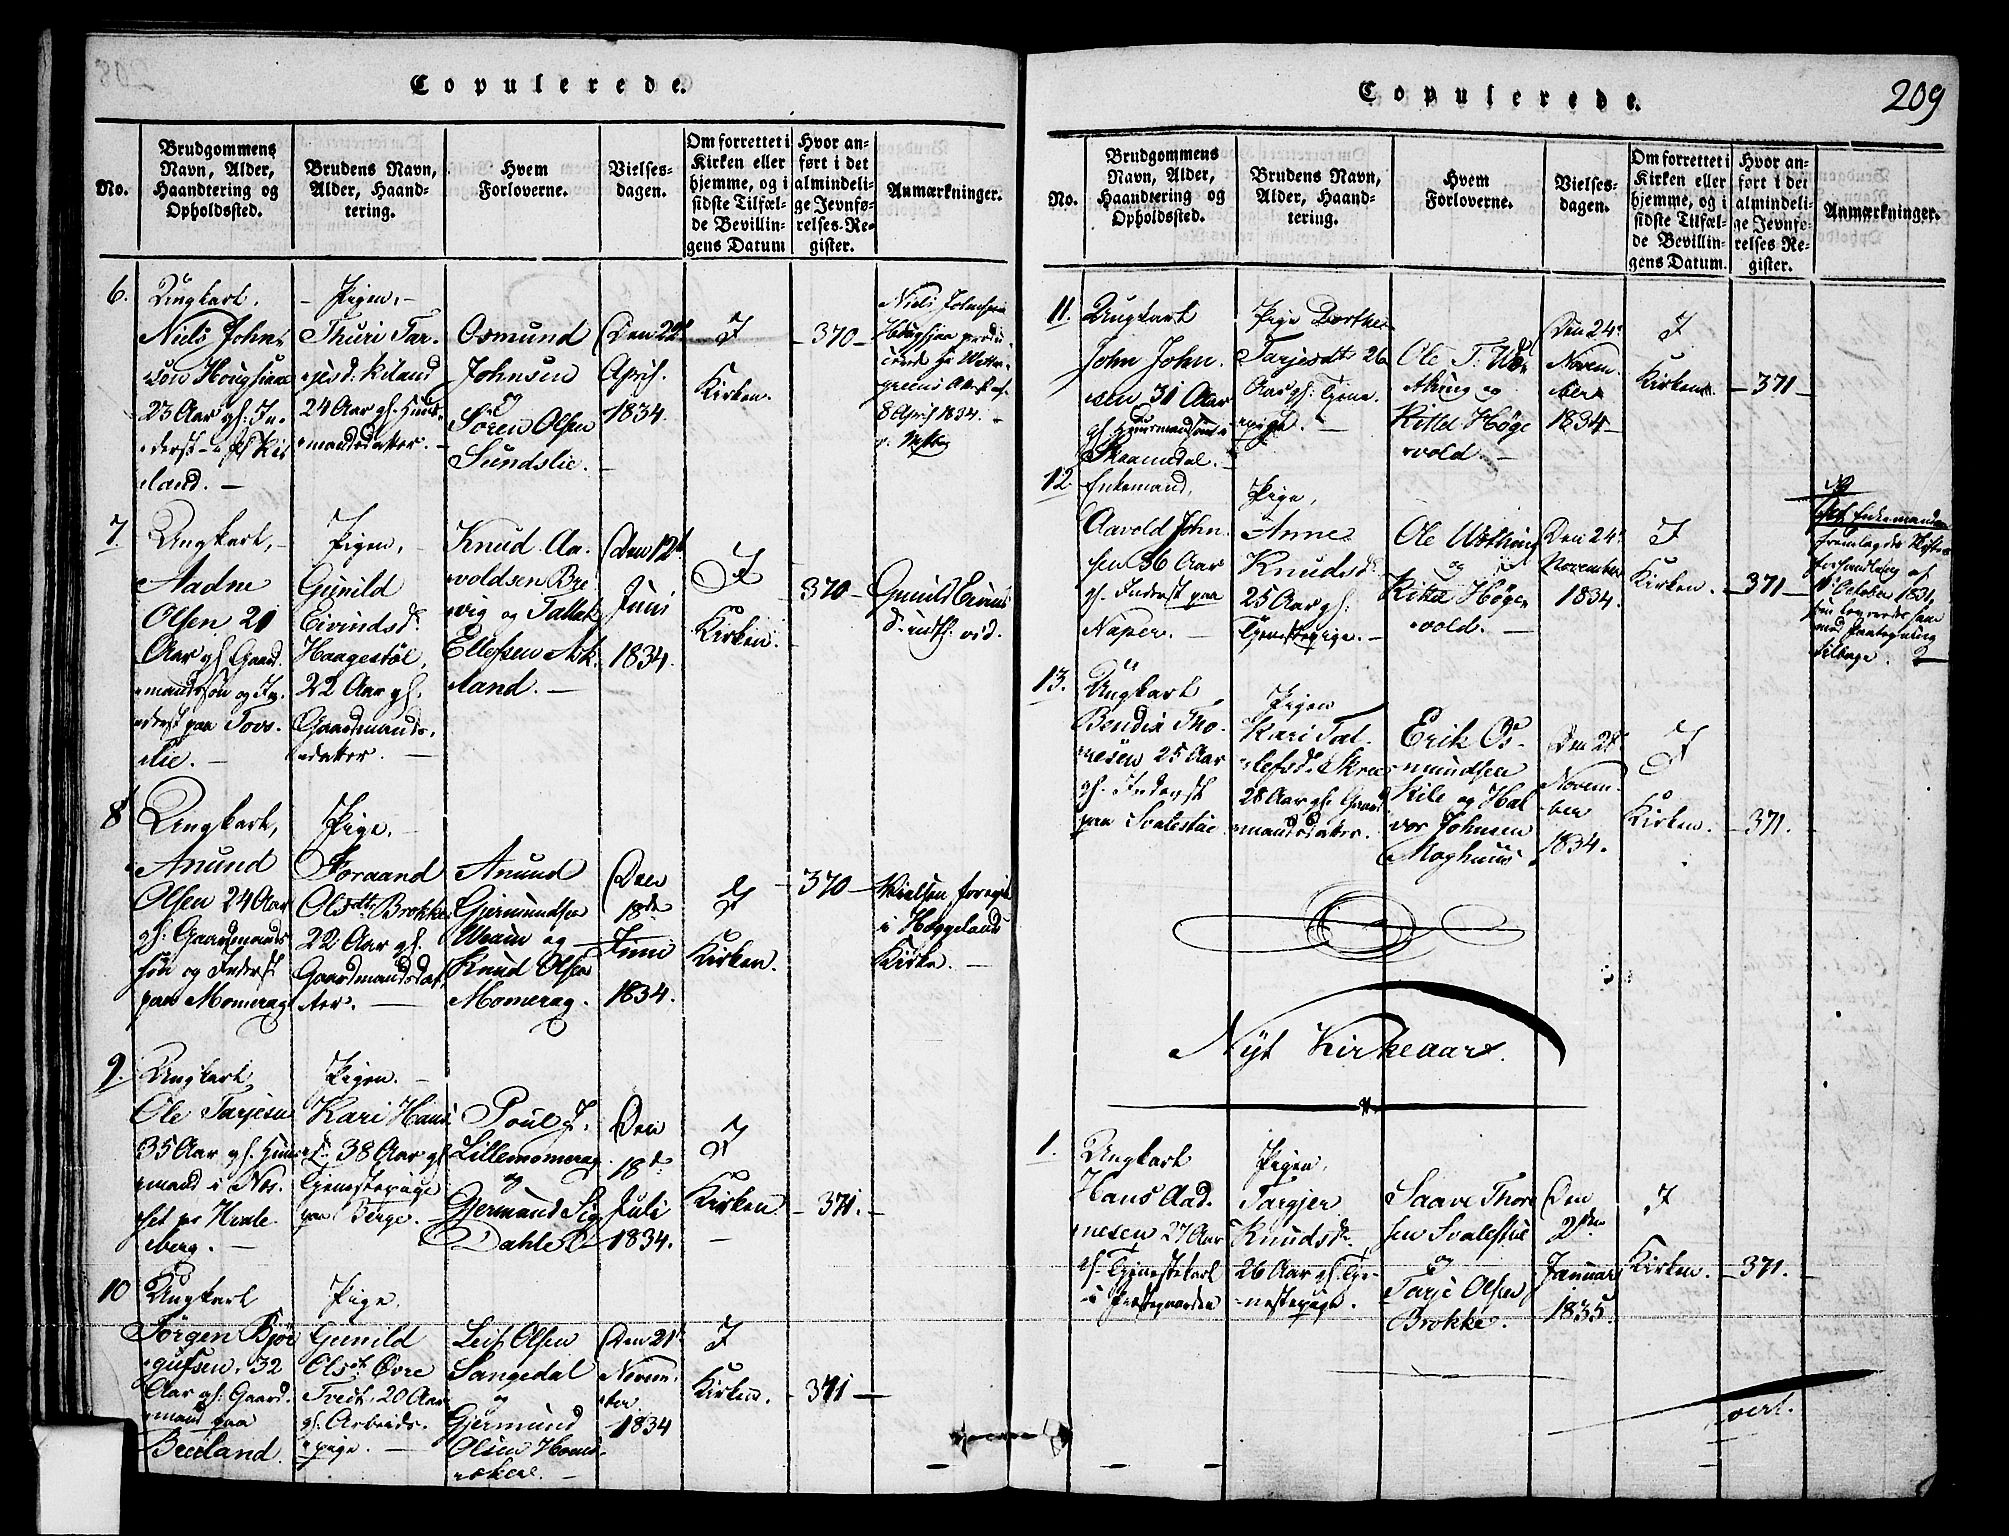 SAKO, Fyresdal kirkebøker, F/Fa/L0003: Parish register (official) no. I 3, 1815-1840, p. 209